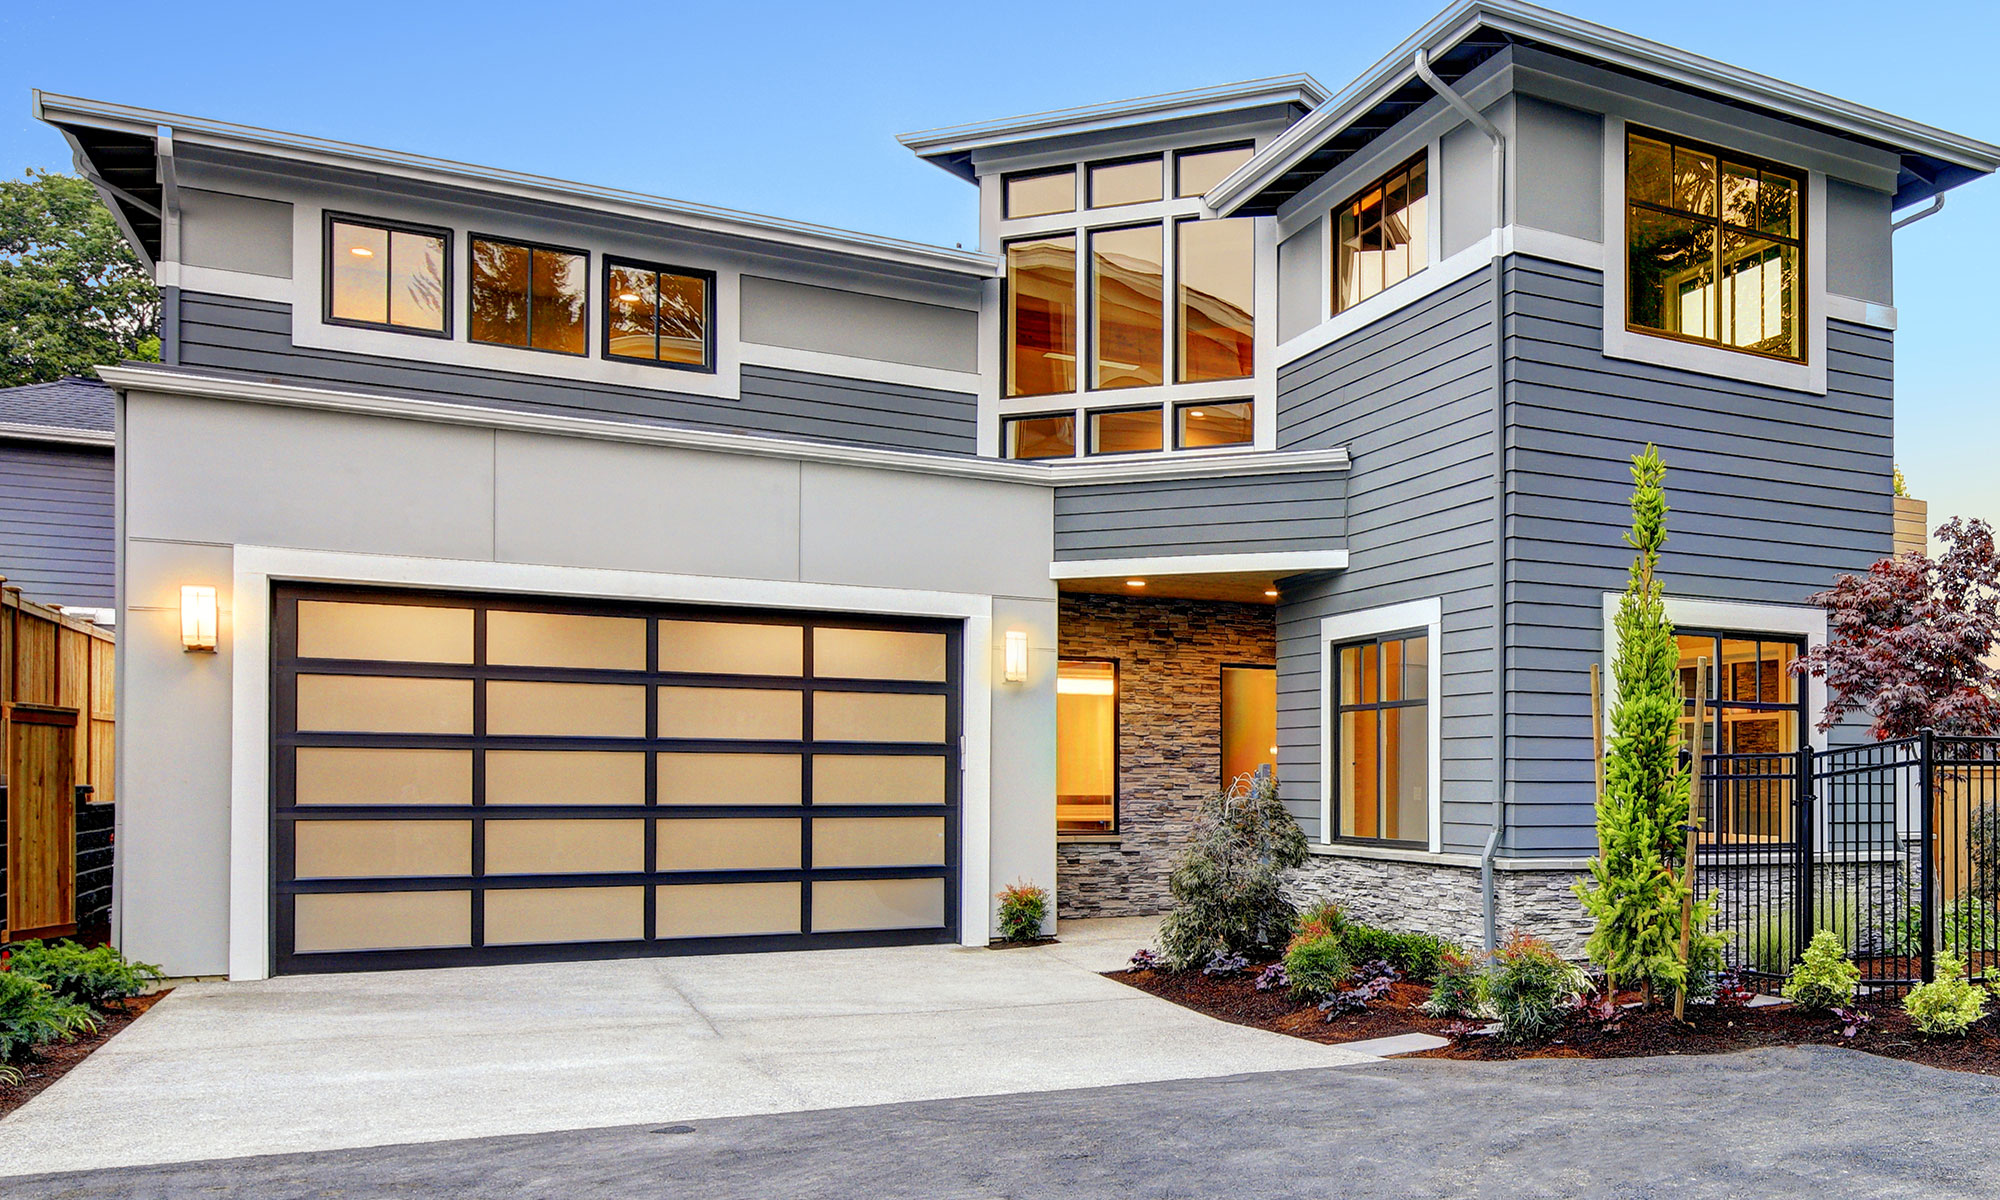 Top Reasons Why You Should Prefer Steel Garage Door for Your Home